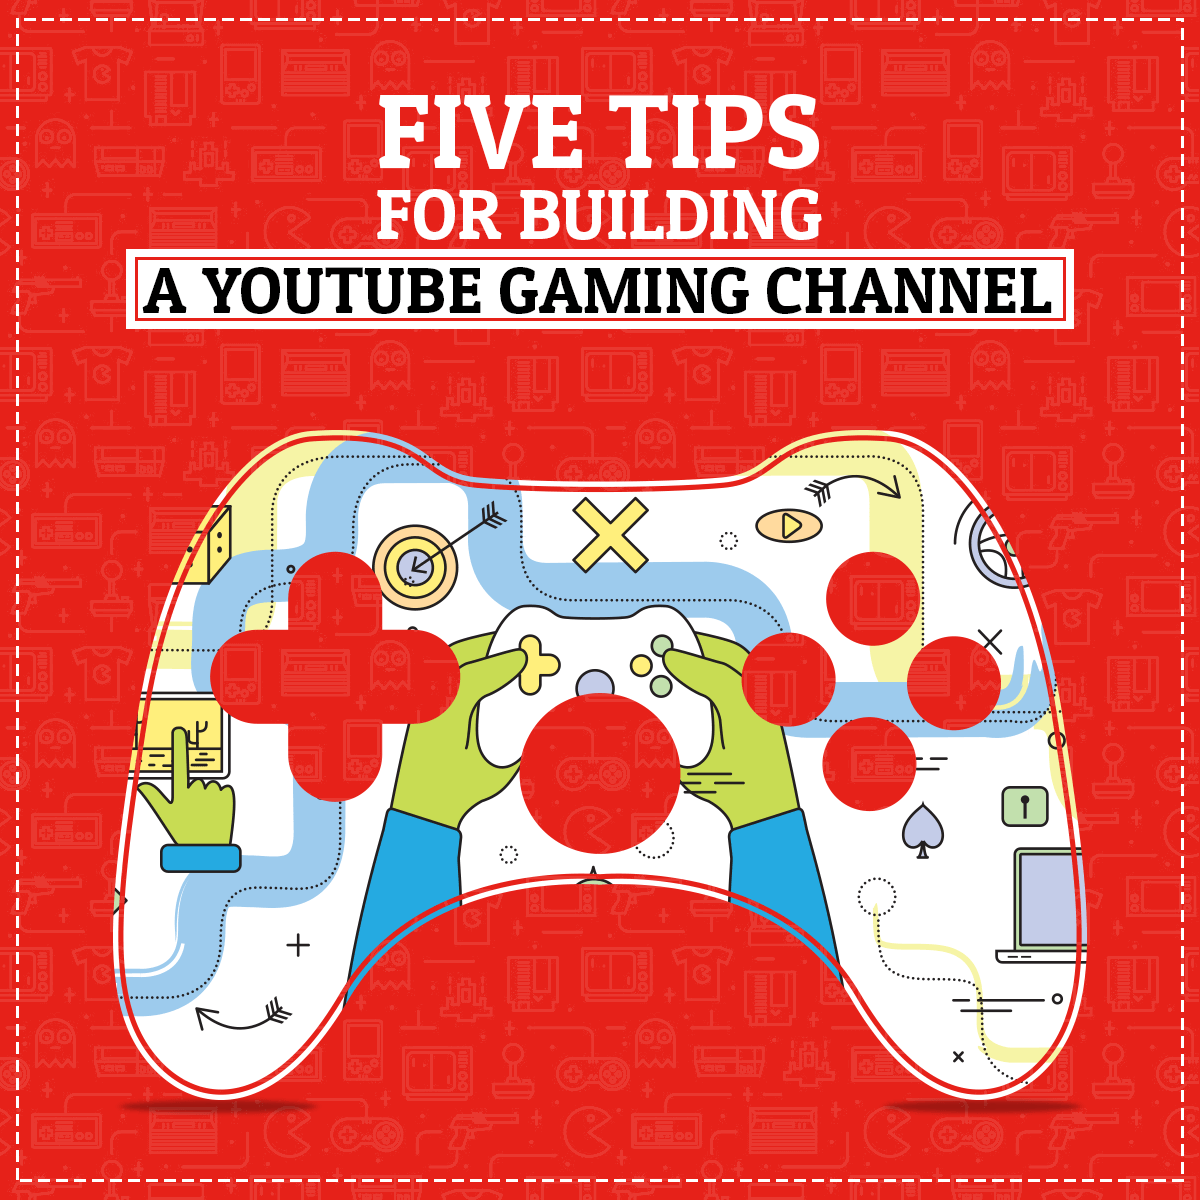 How To Start A YouTube Gaming Channel: Players Guide